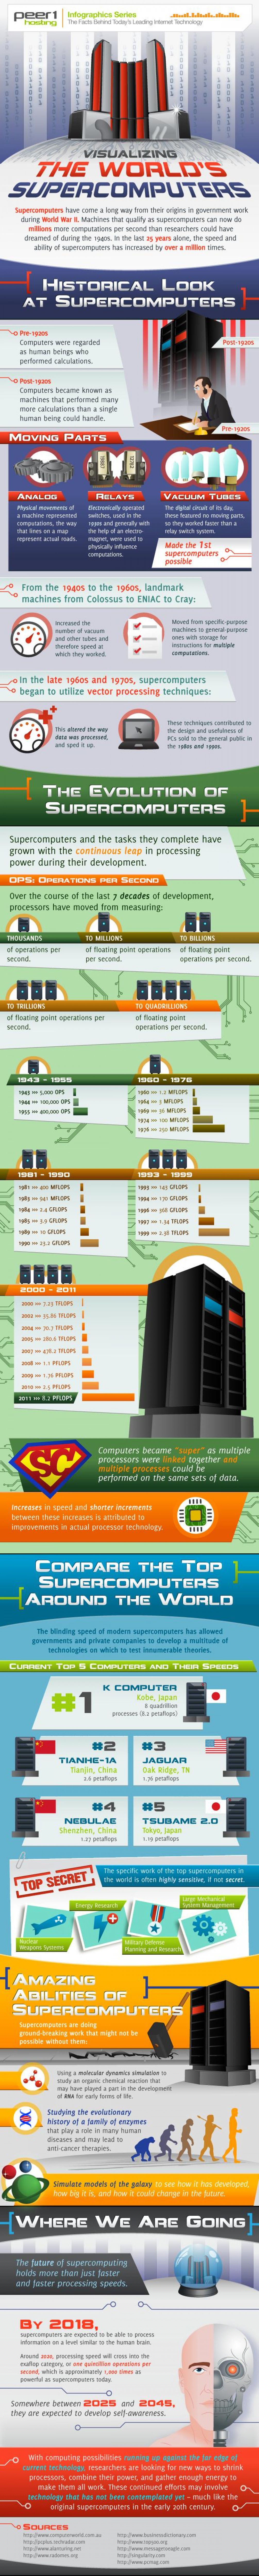 70 Years of Supercomputers Infographic